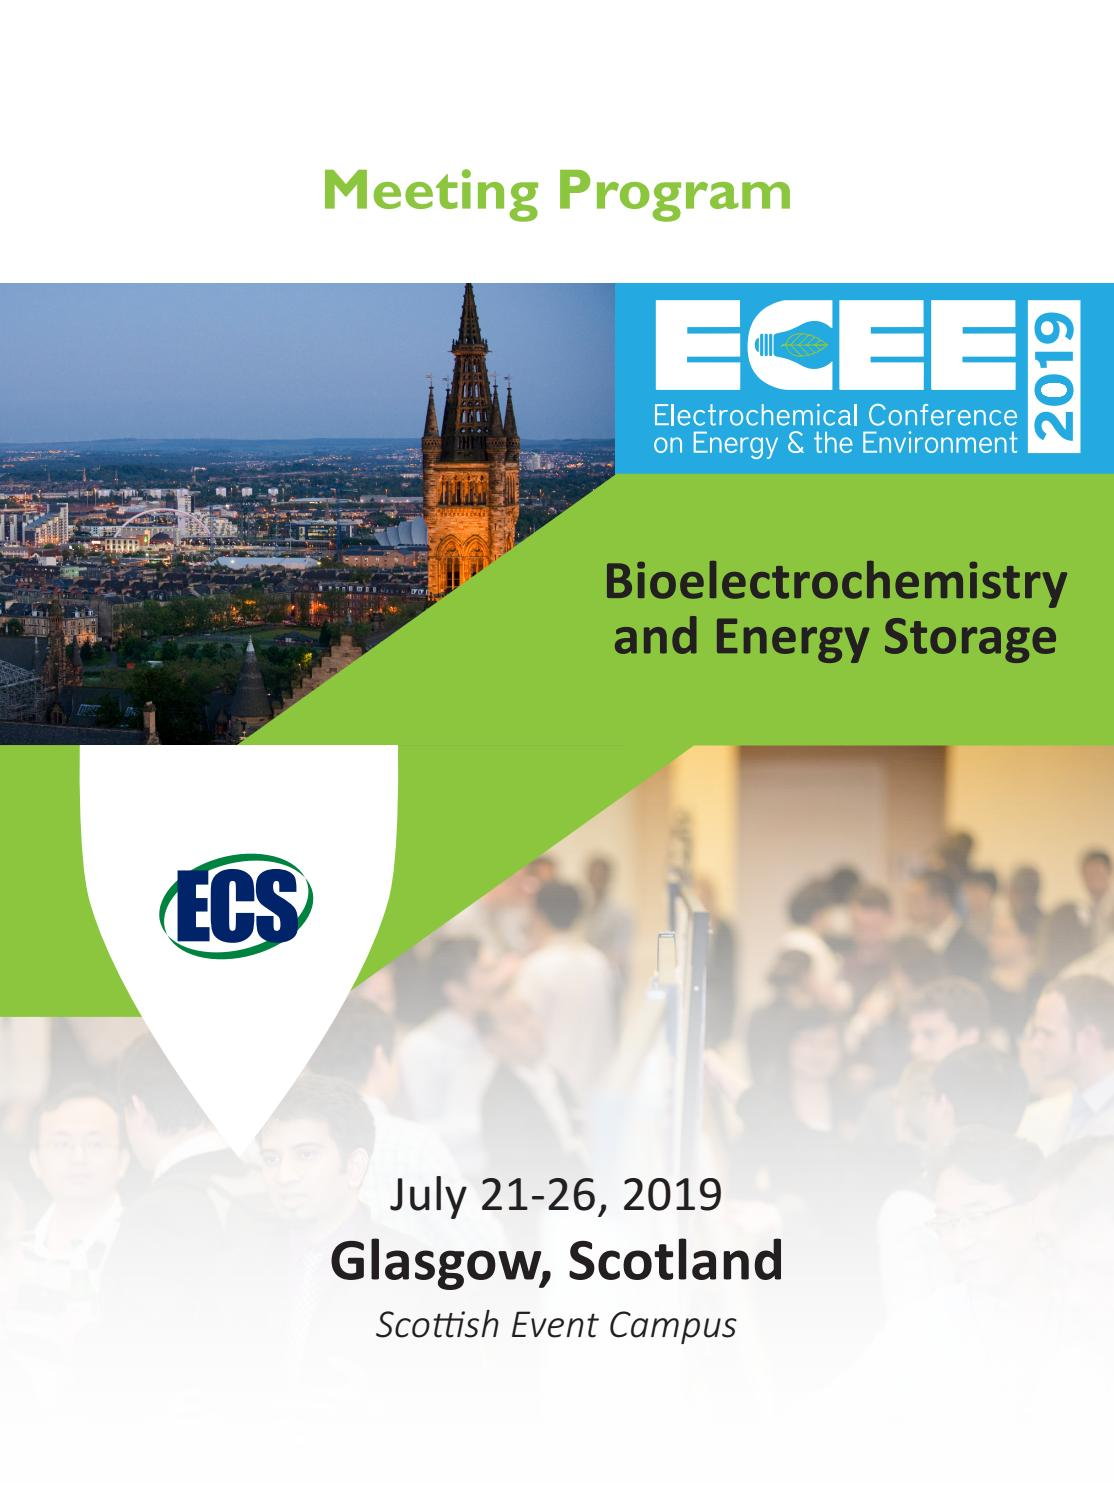 ECEE 2019-Bioelectrochemistry and Energy Storage Meeting Program by